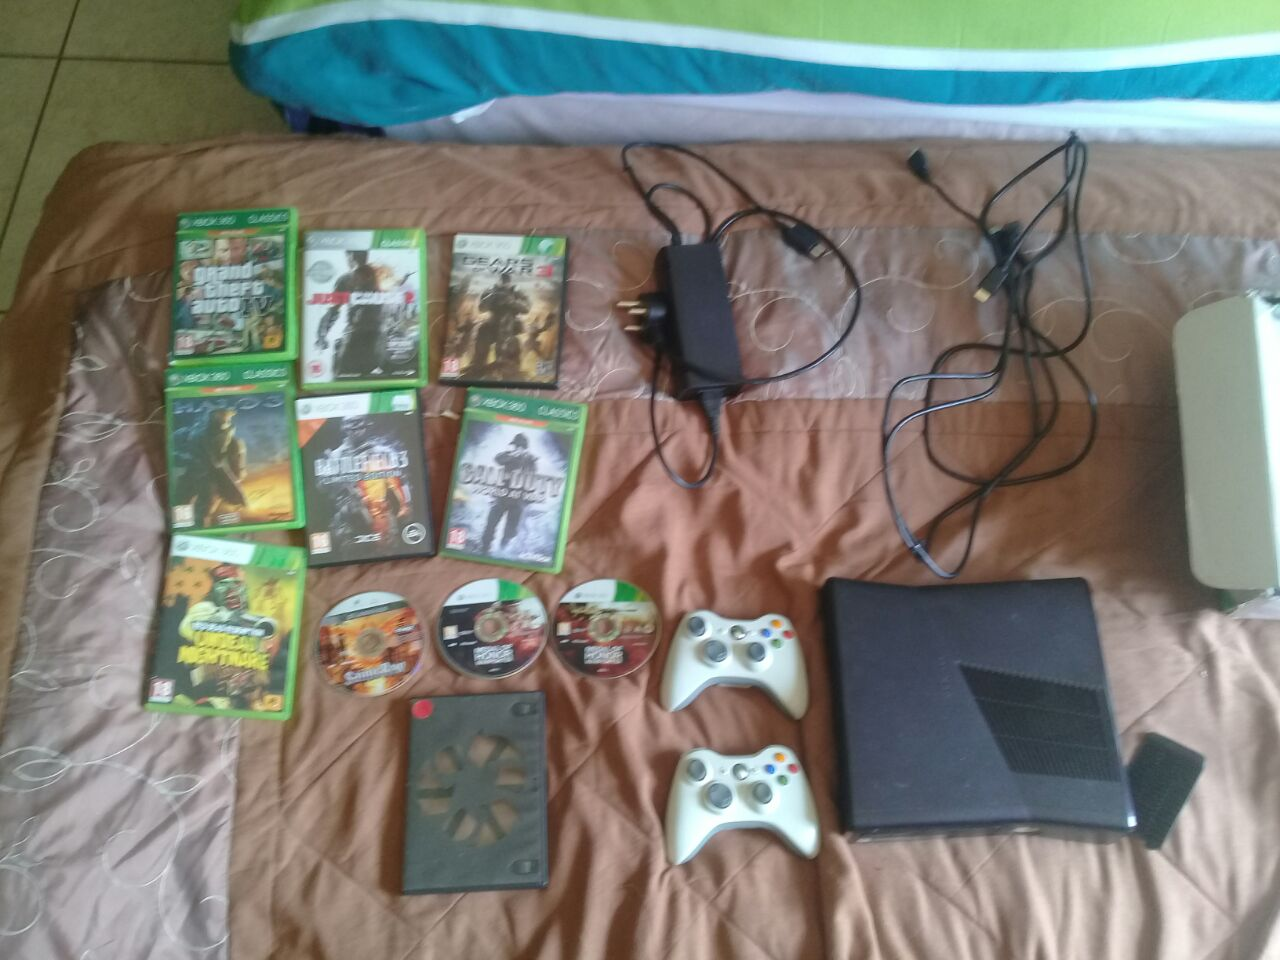 Xbox 360 with games and asesories